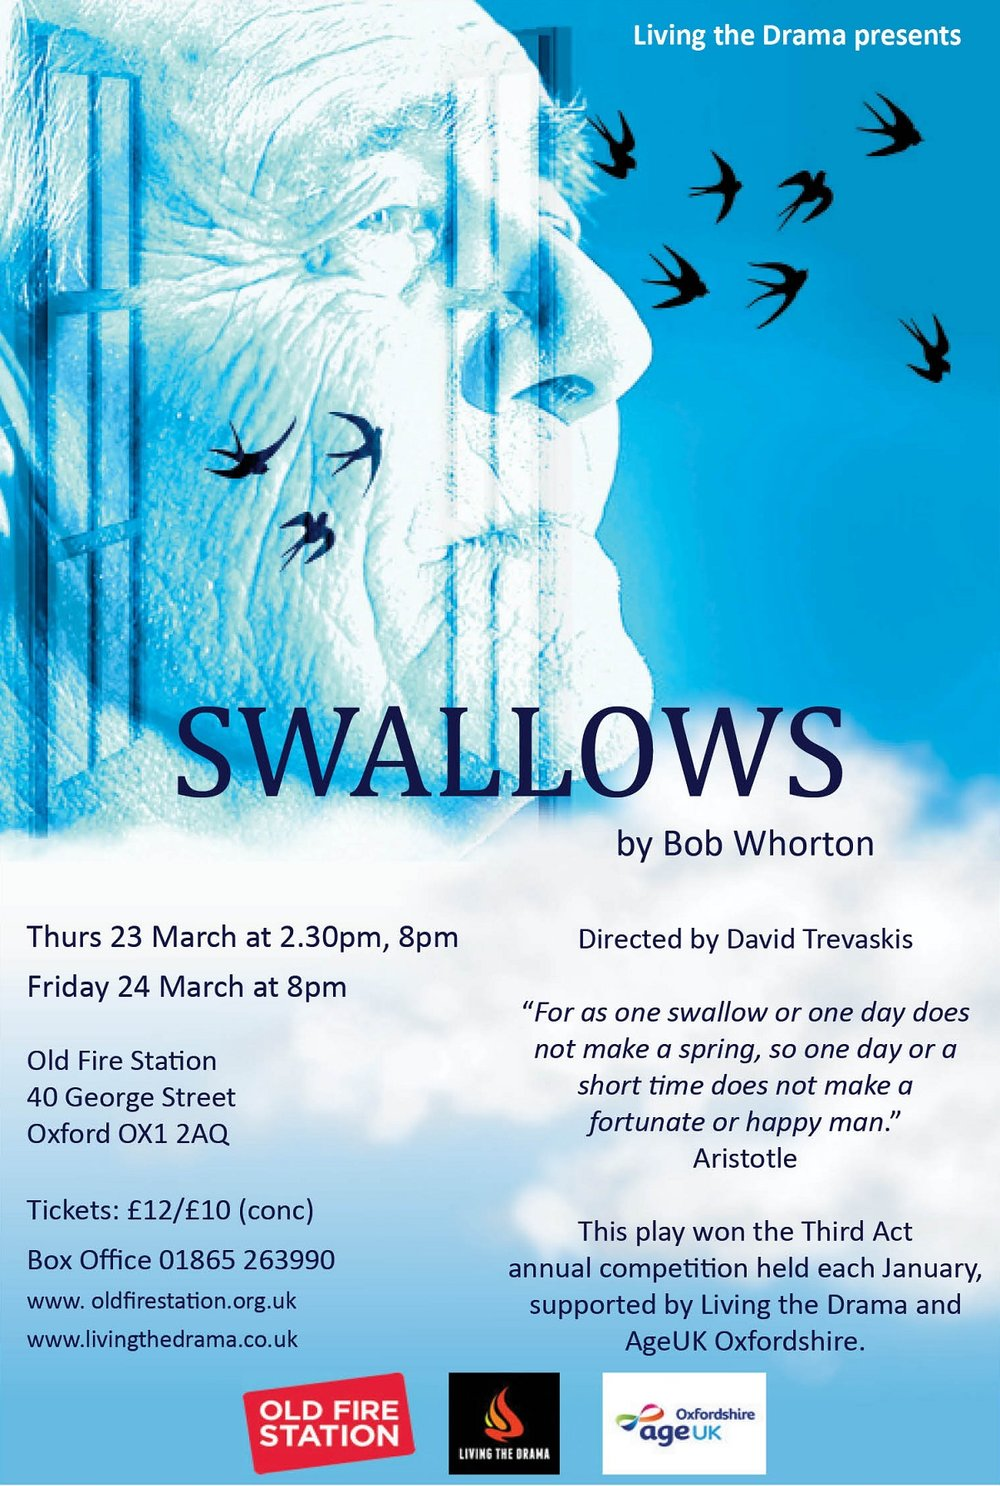 Draft-Swallows-Flyer-Feb-9th.jpg